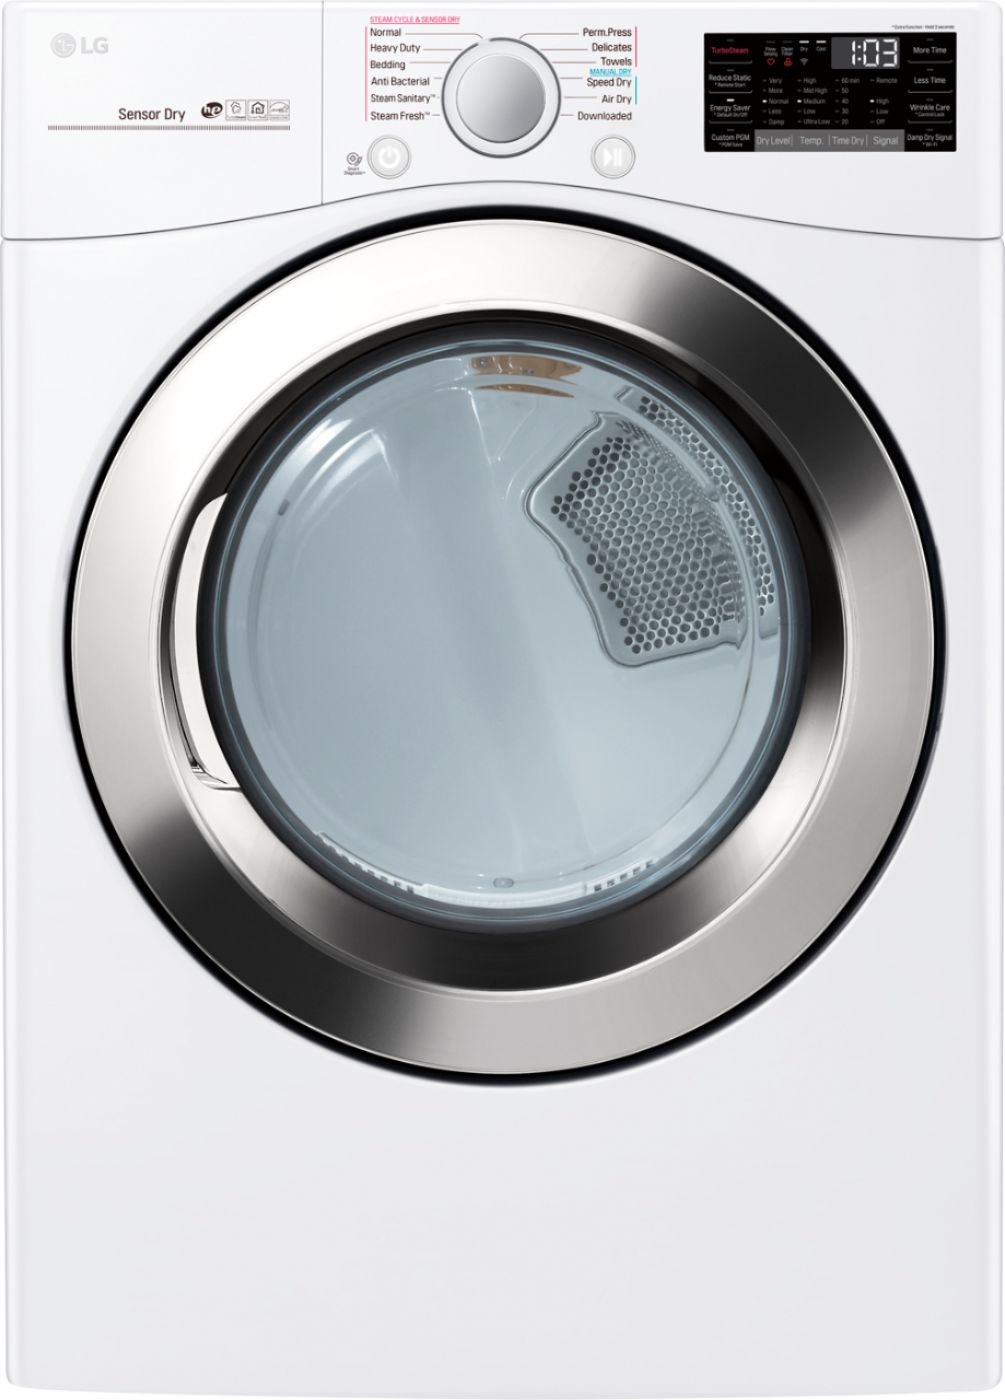 How to Tell If a Dryer Is Gas or Electric